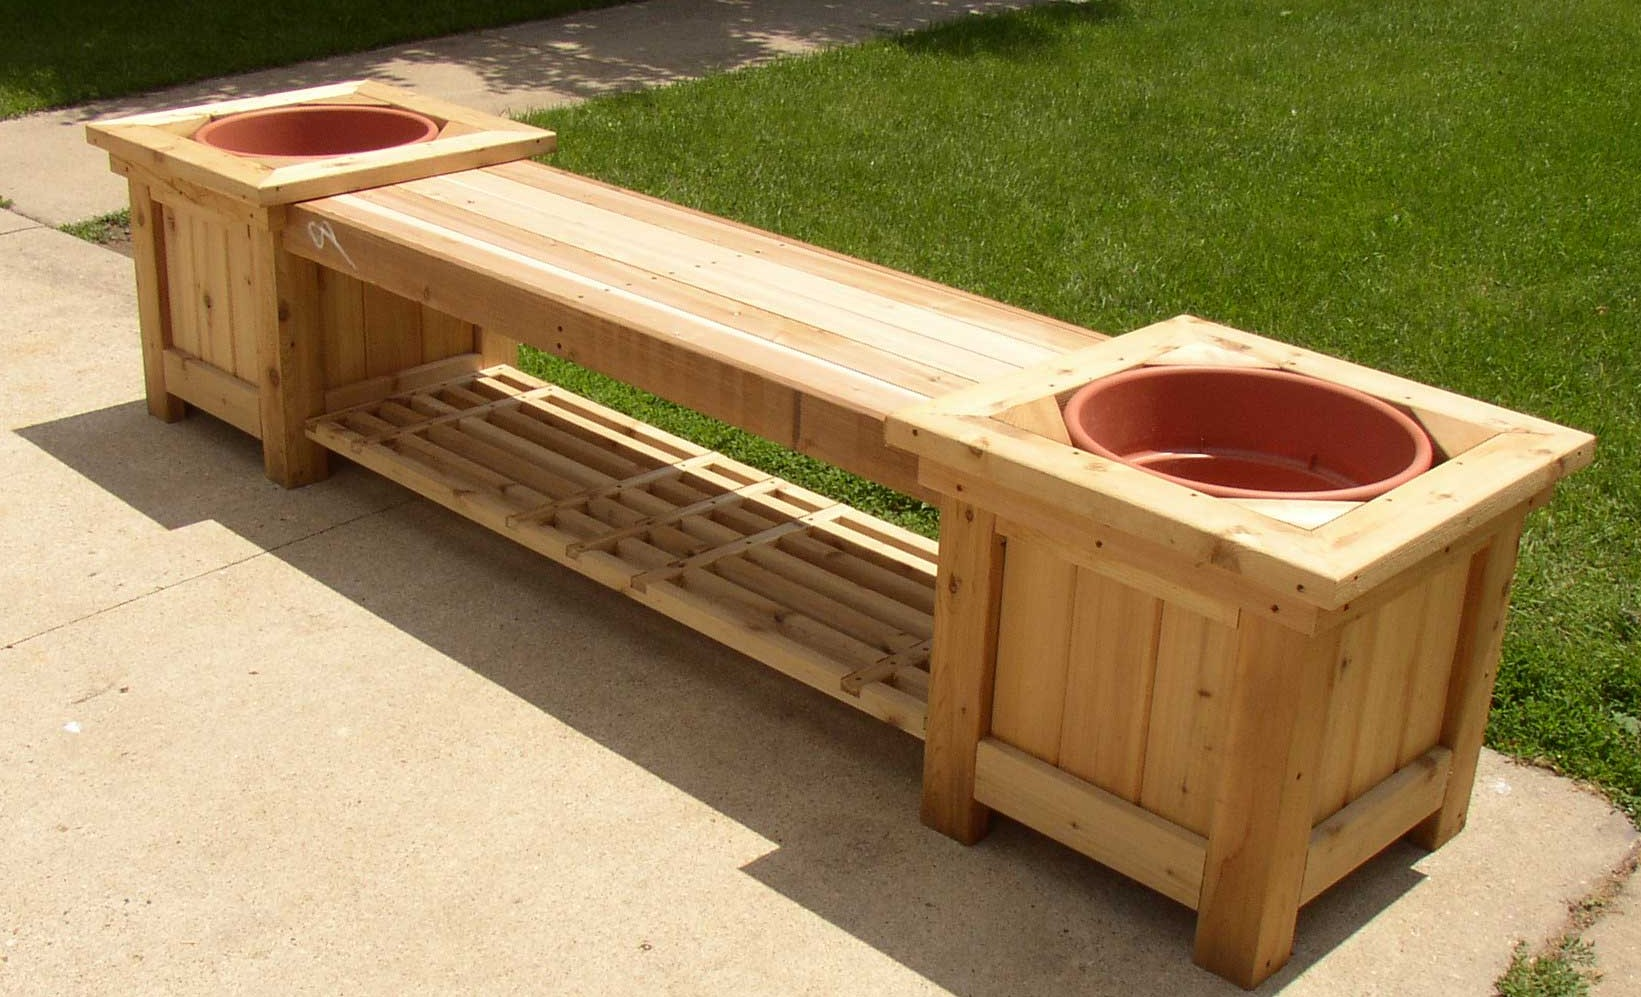 planter plans home build furniture plans easy woodworking tools